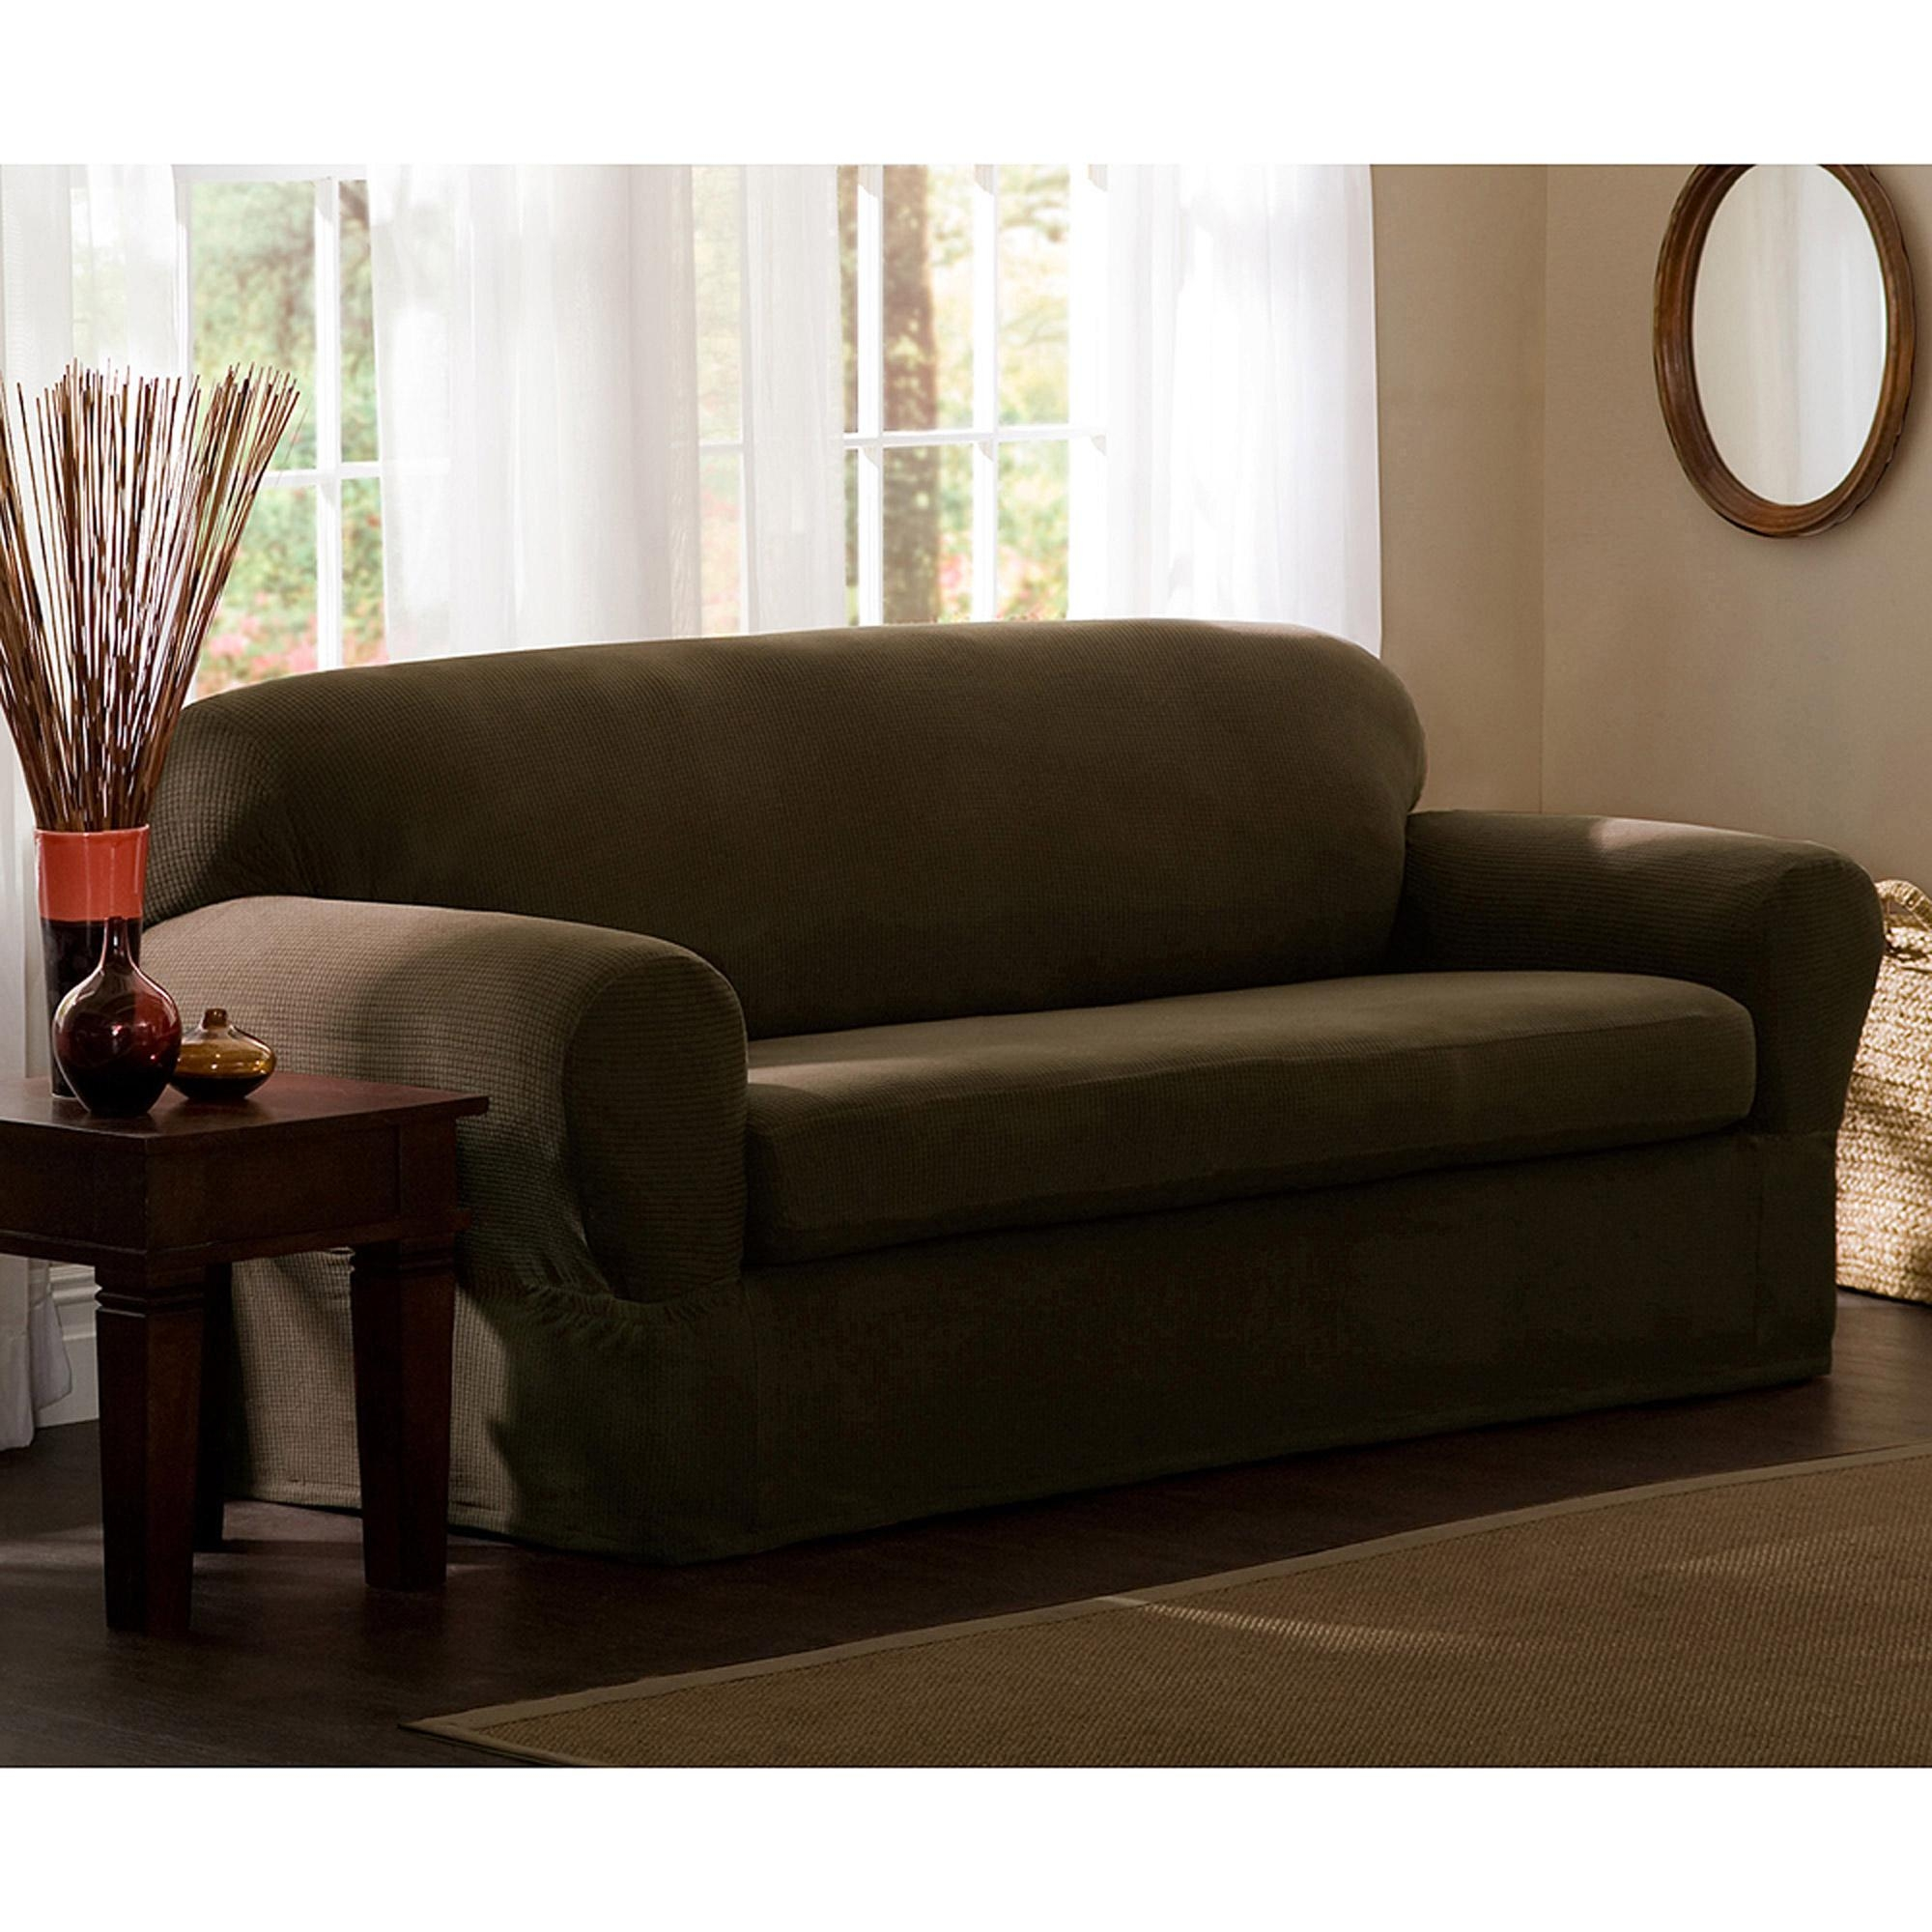 Furniture: Sofa Covers Walmart | Walmart Couch Covers | Slip Within Covers For Sofas (View 15 of 20)